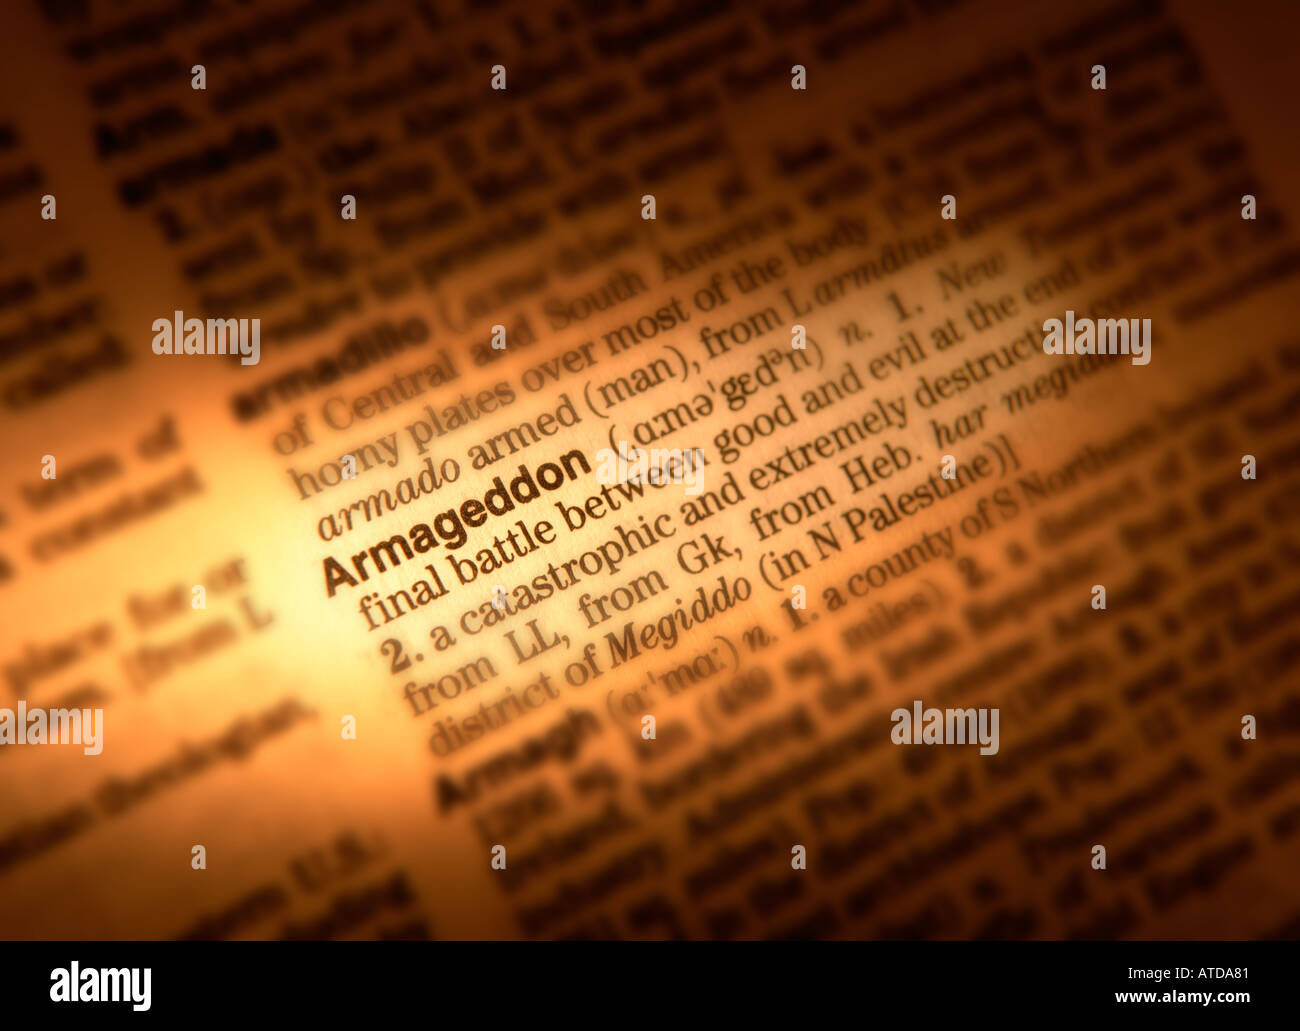 CLOSE UP OF DICTIONARY PAGE SHOWING DEFINITION OF THE WORD ARMAGEDDON - Stock Image